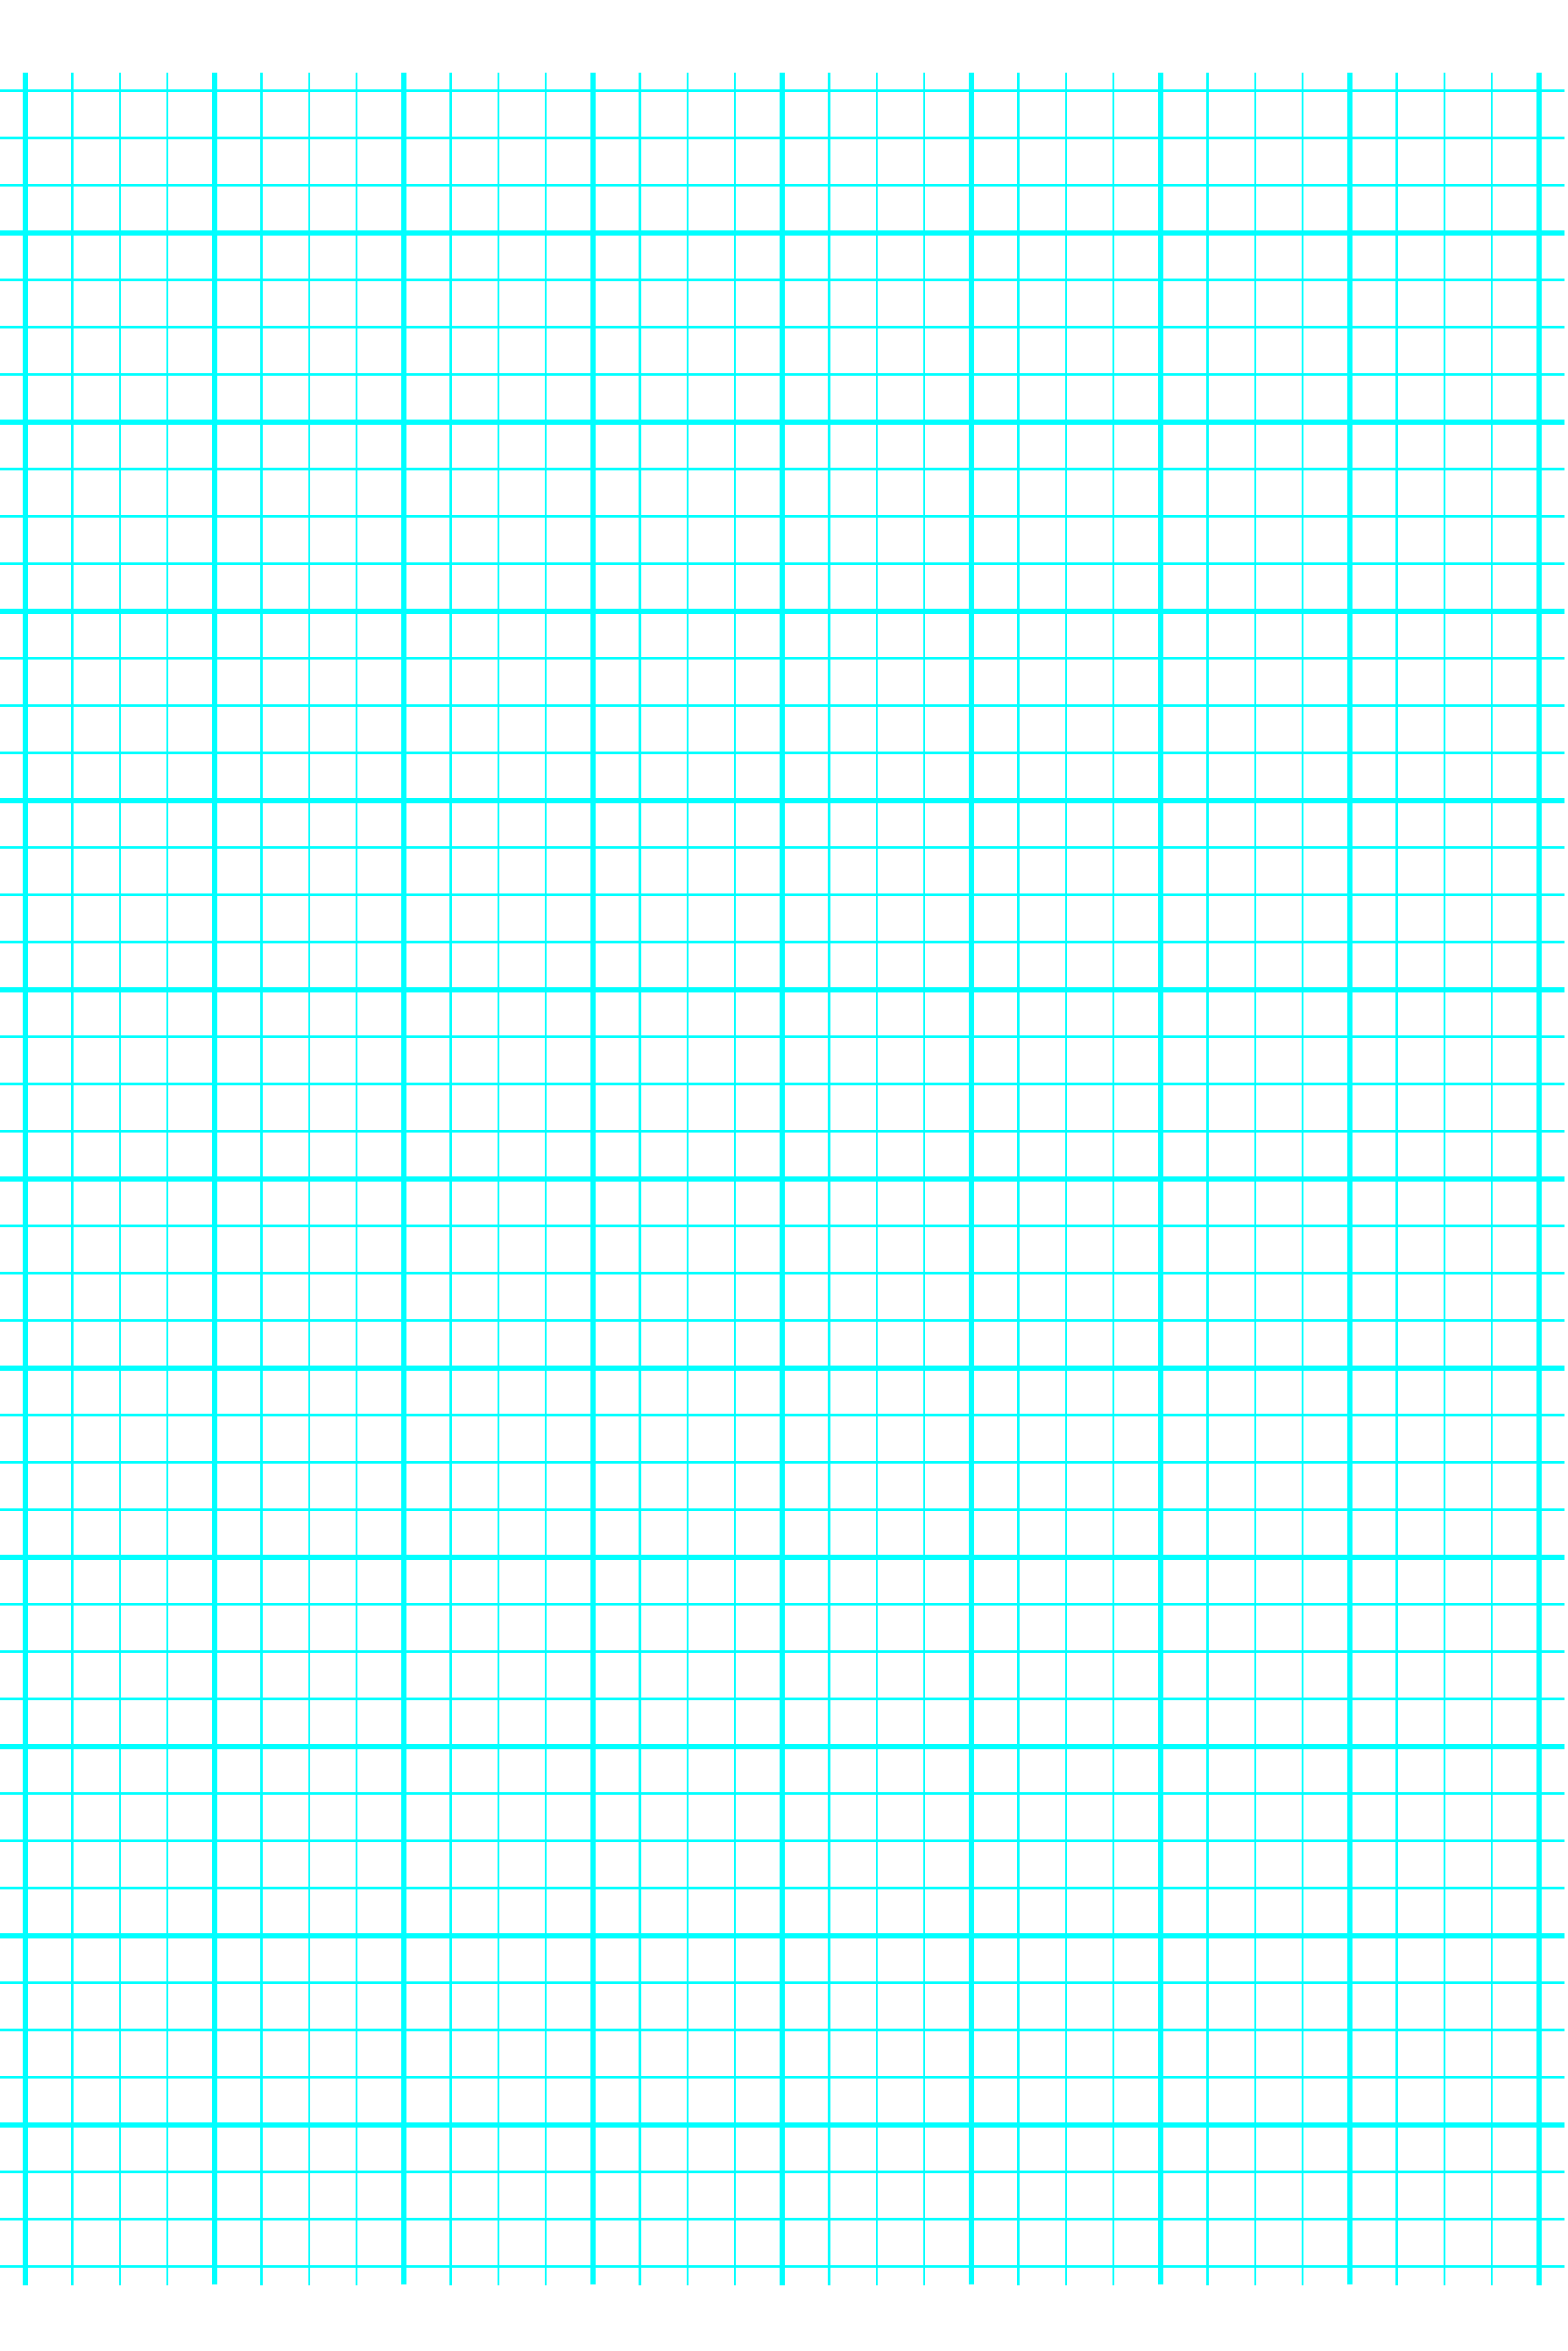 4 Lines Per Inch Graph Paper On A4 Sized Paper Heavy